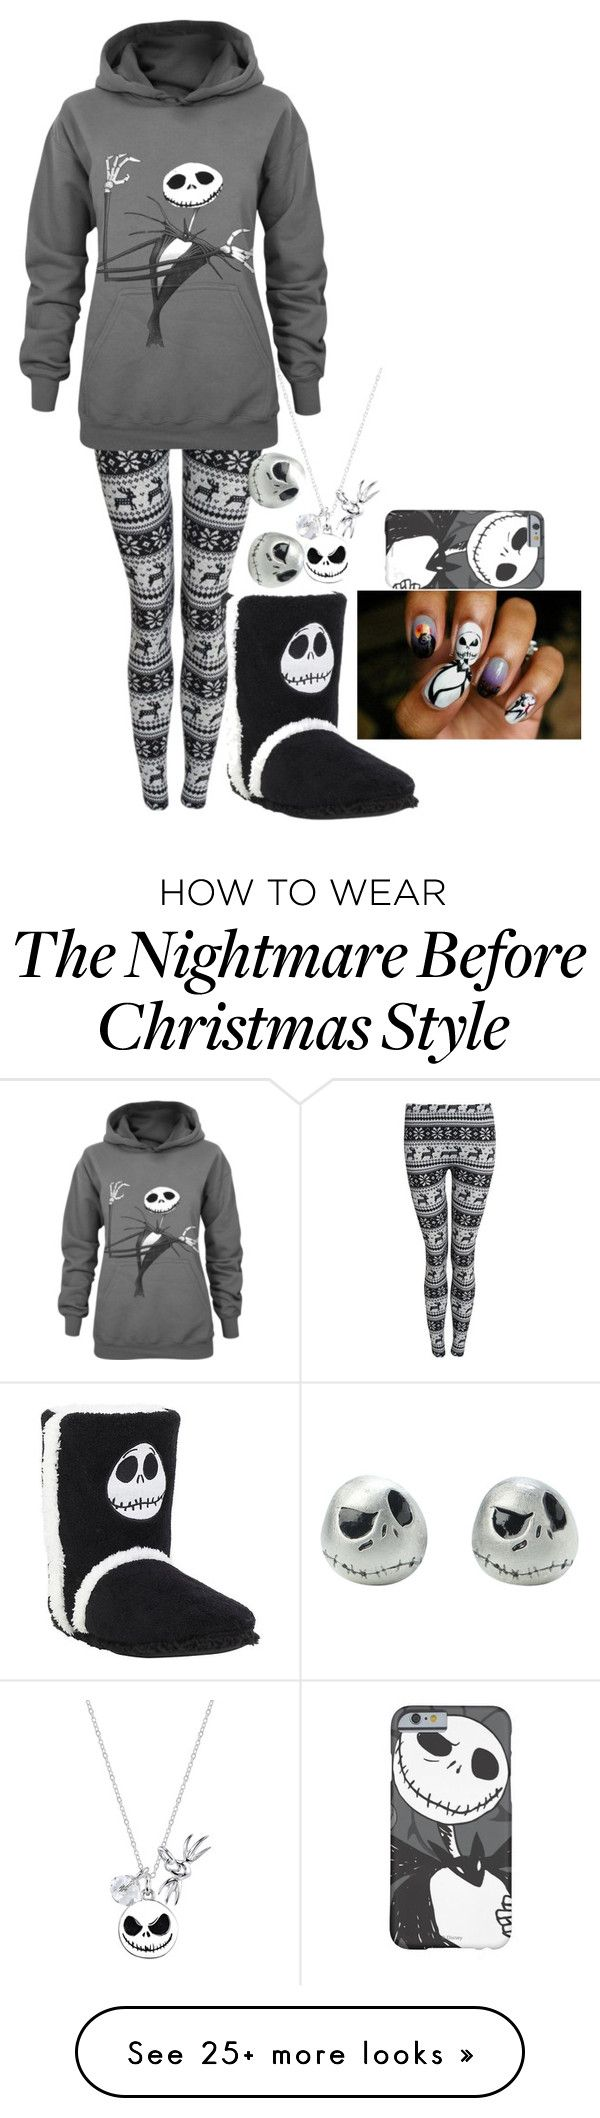 """Outfit #7 (The Night(Mare) Before Christmas)"" by lol-fangirl-af on Polyvore featuring mode en Disney"